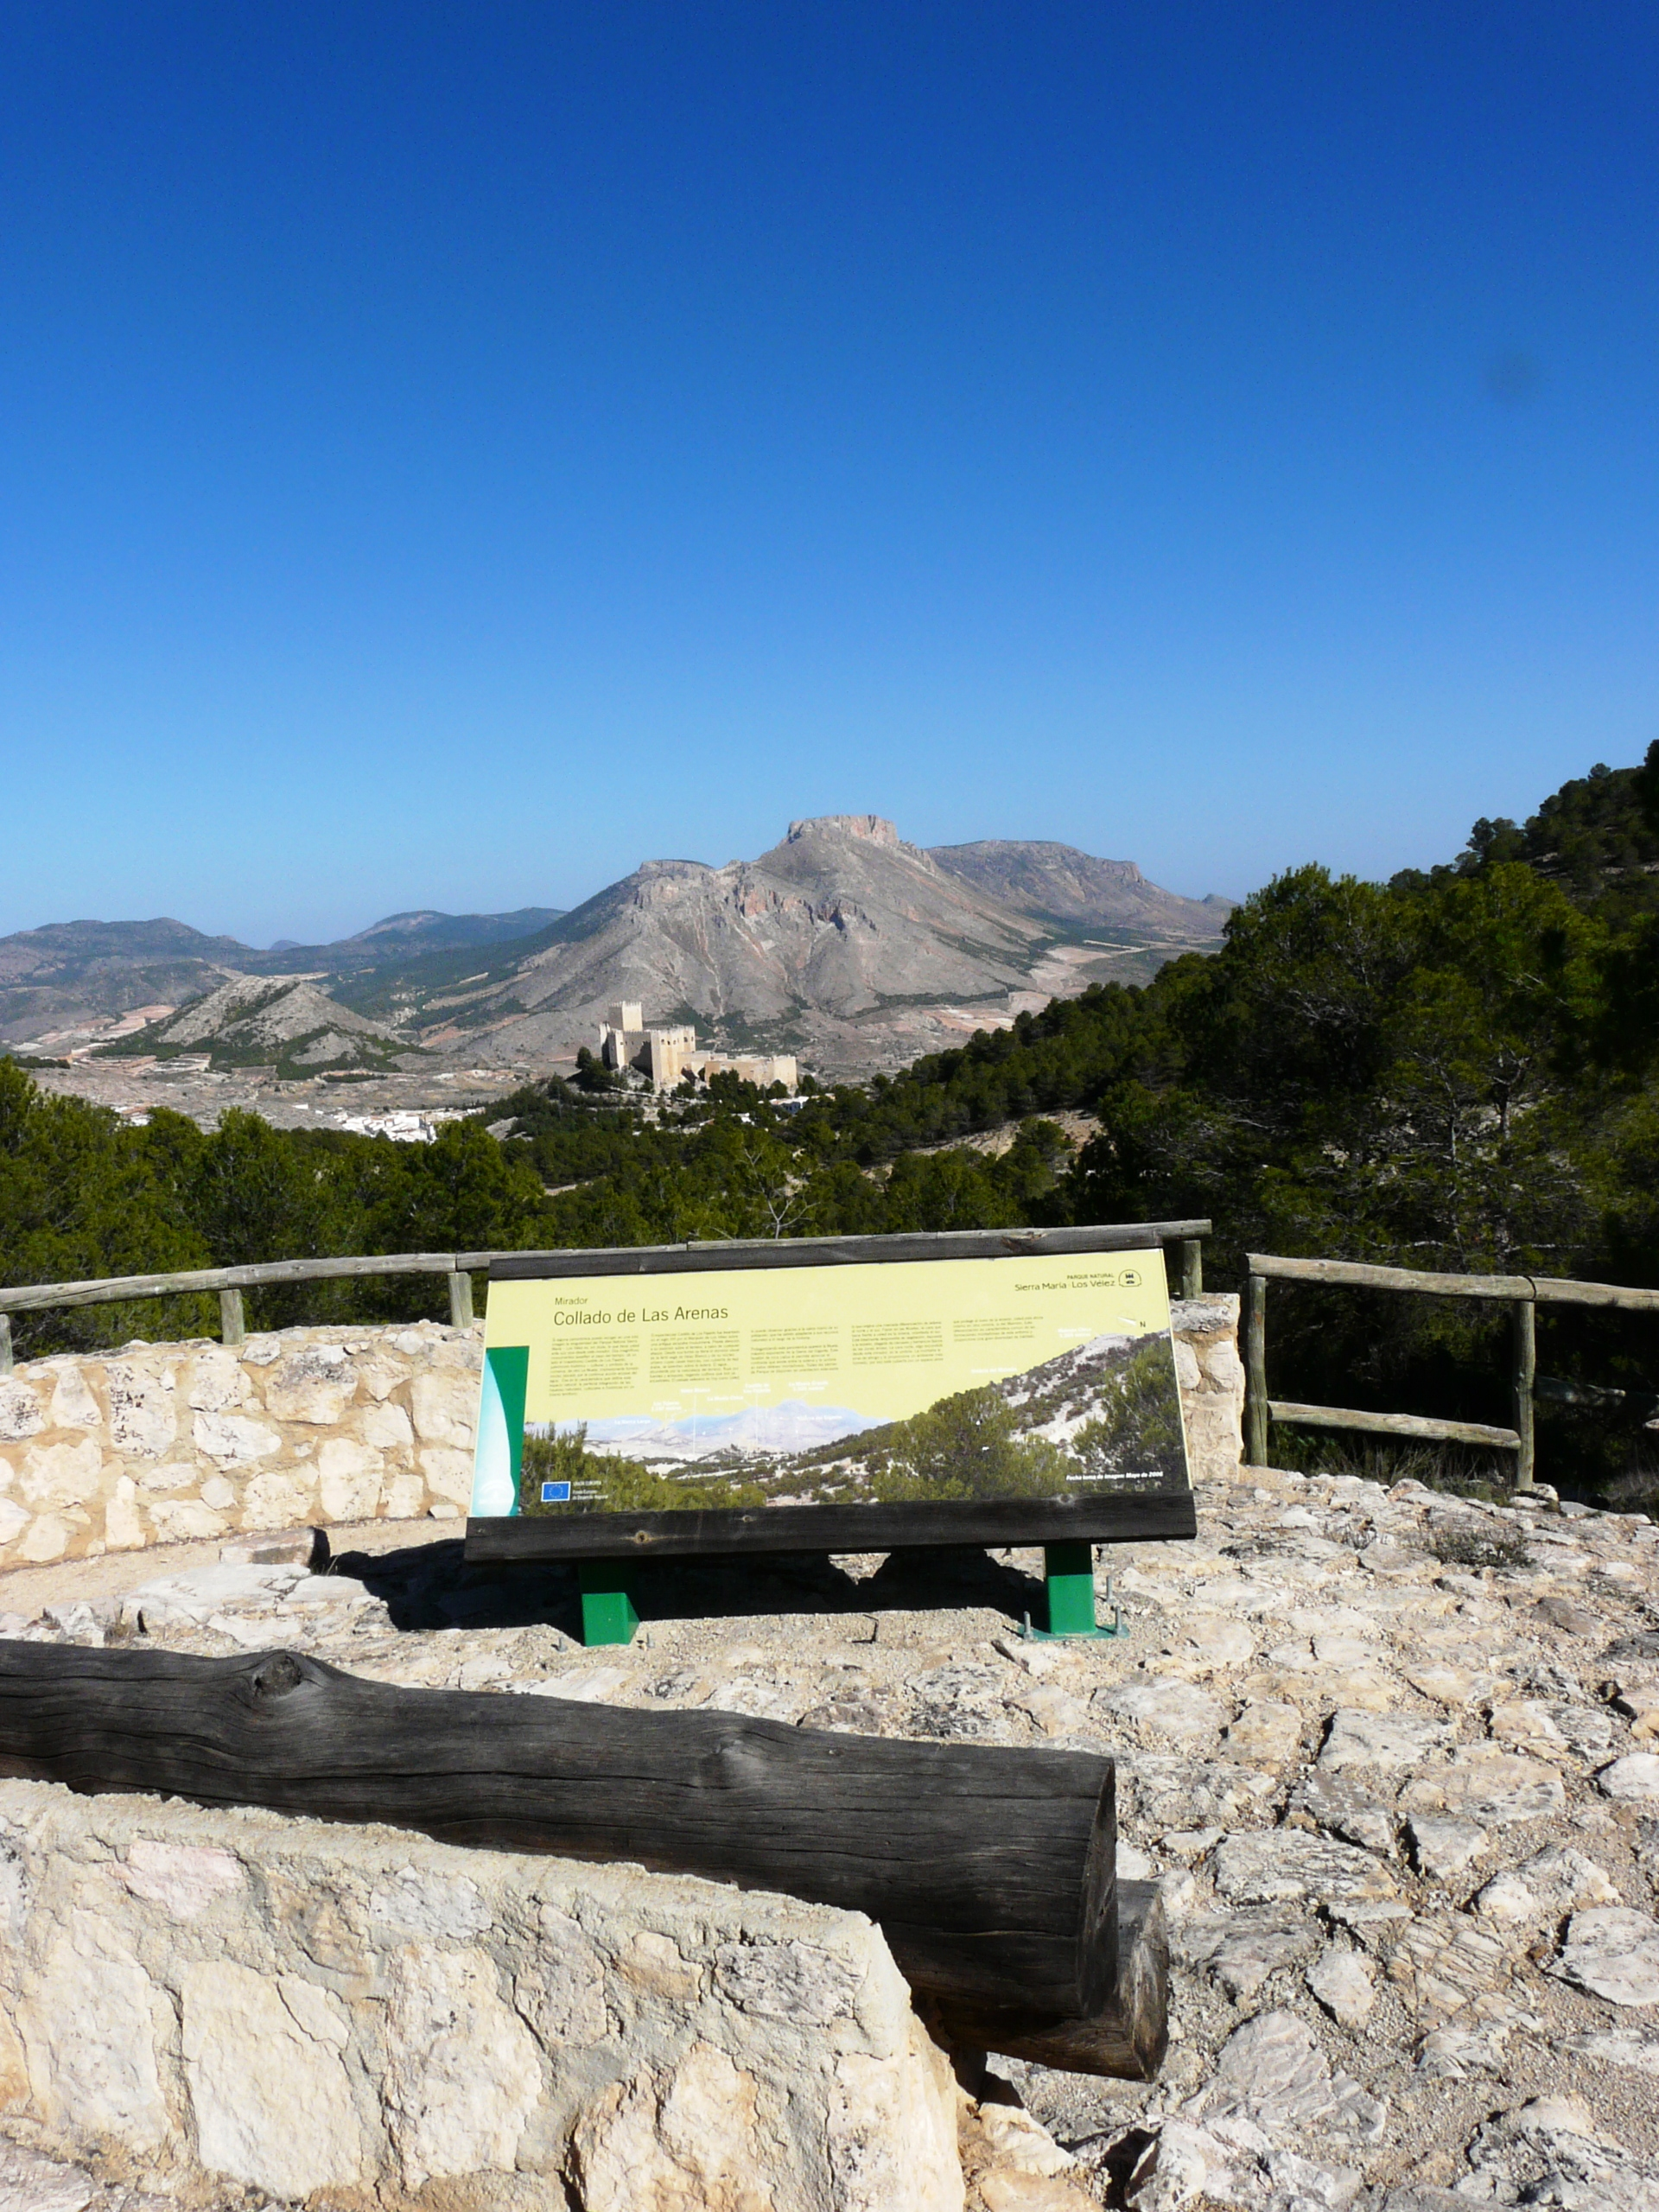 Collado de las Arenas Viewpoint